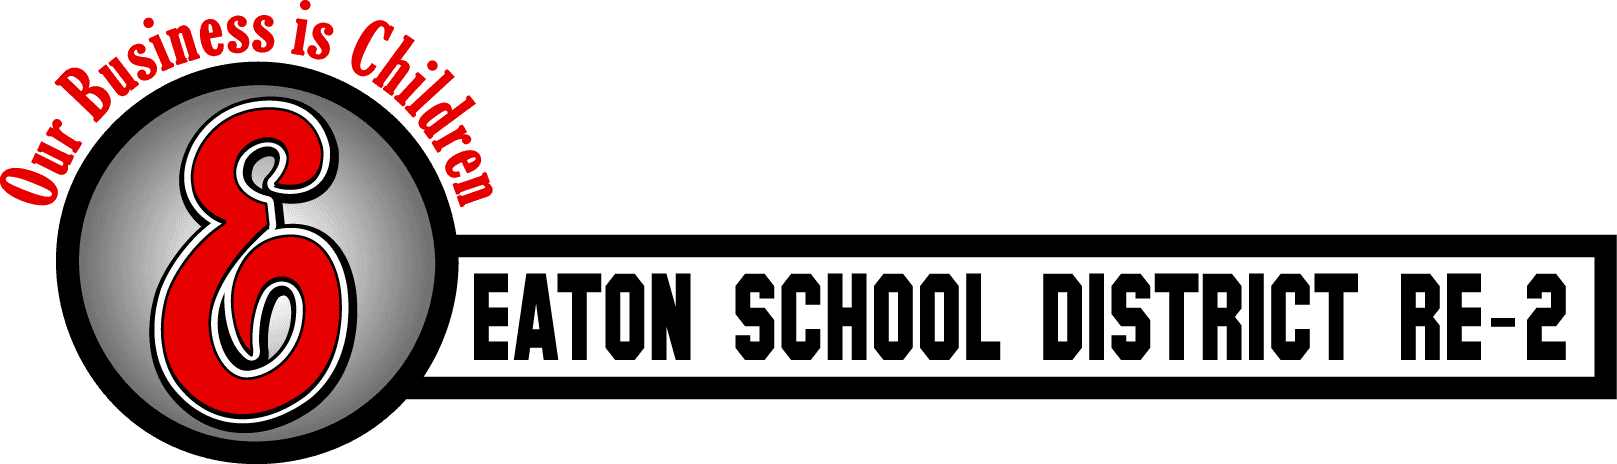 Eaton School District RE-2